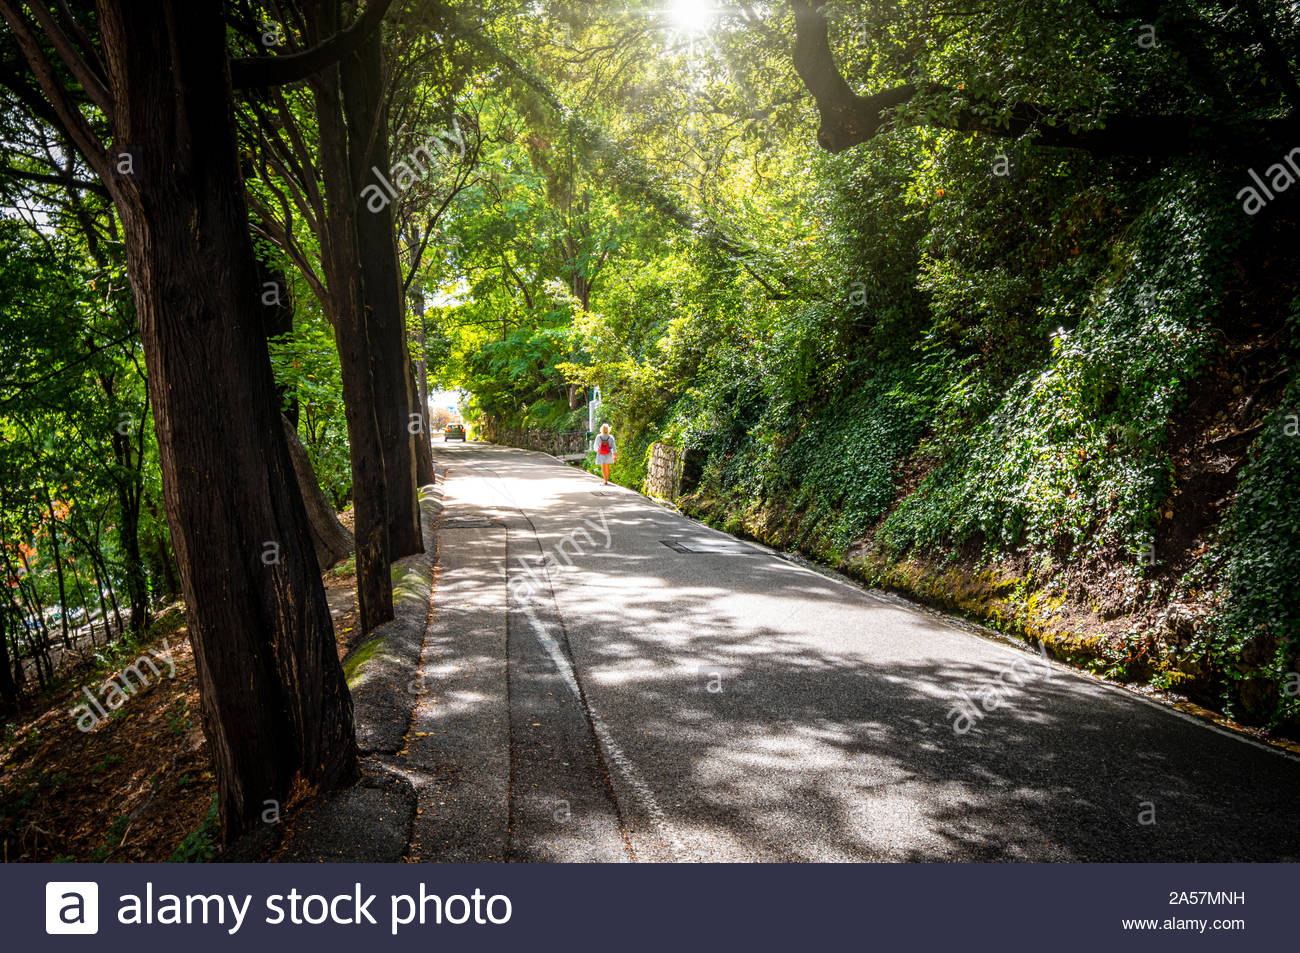 A solo young female traveler with a backpack walks in the sunlight on a tree lined street on Castle Hill, in the Mediterranean city of Nice France Stock Photo